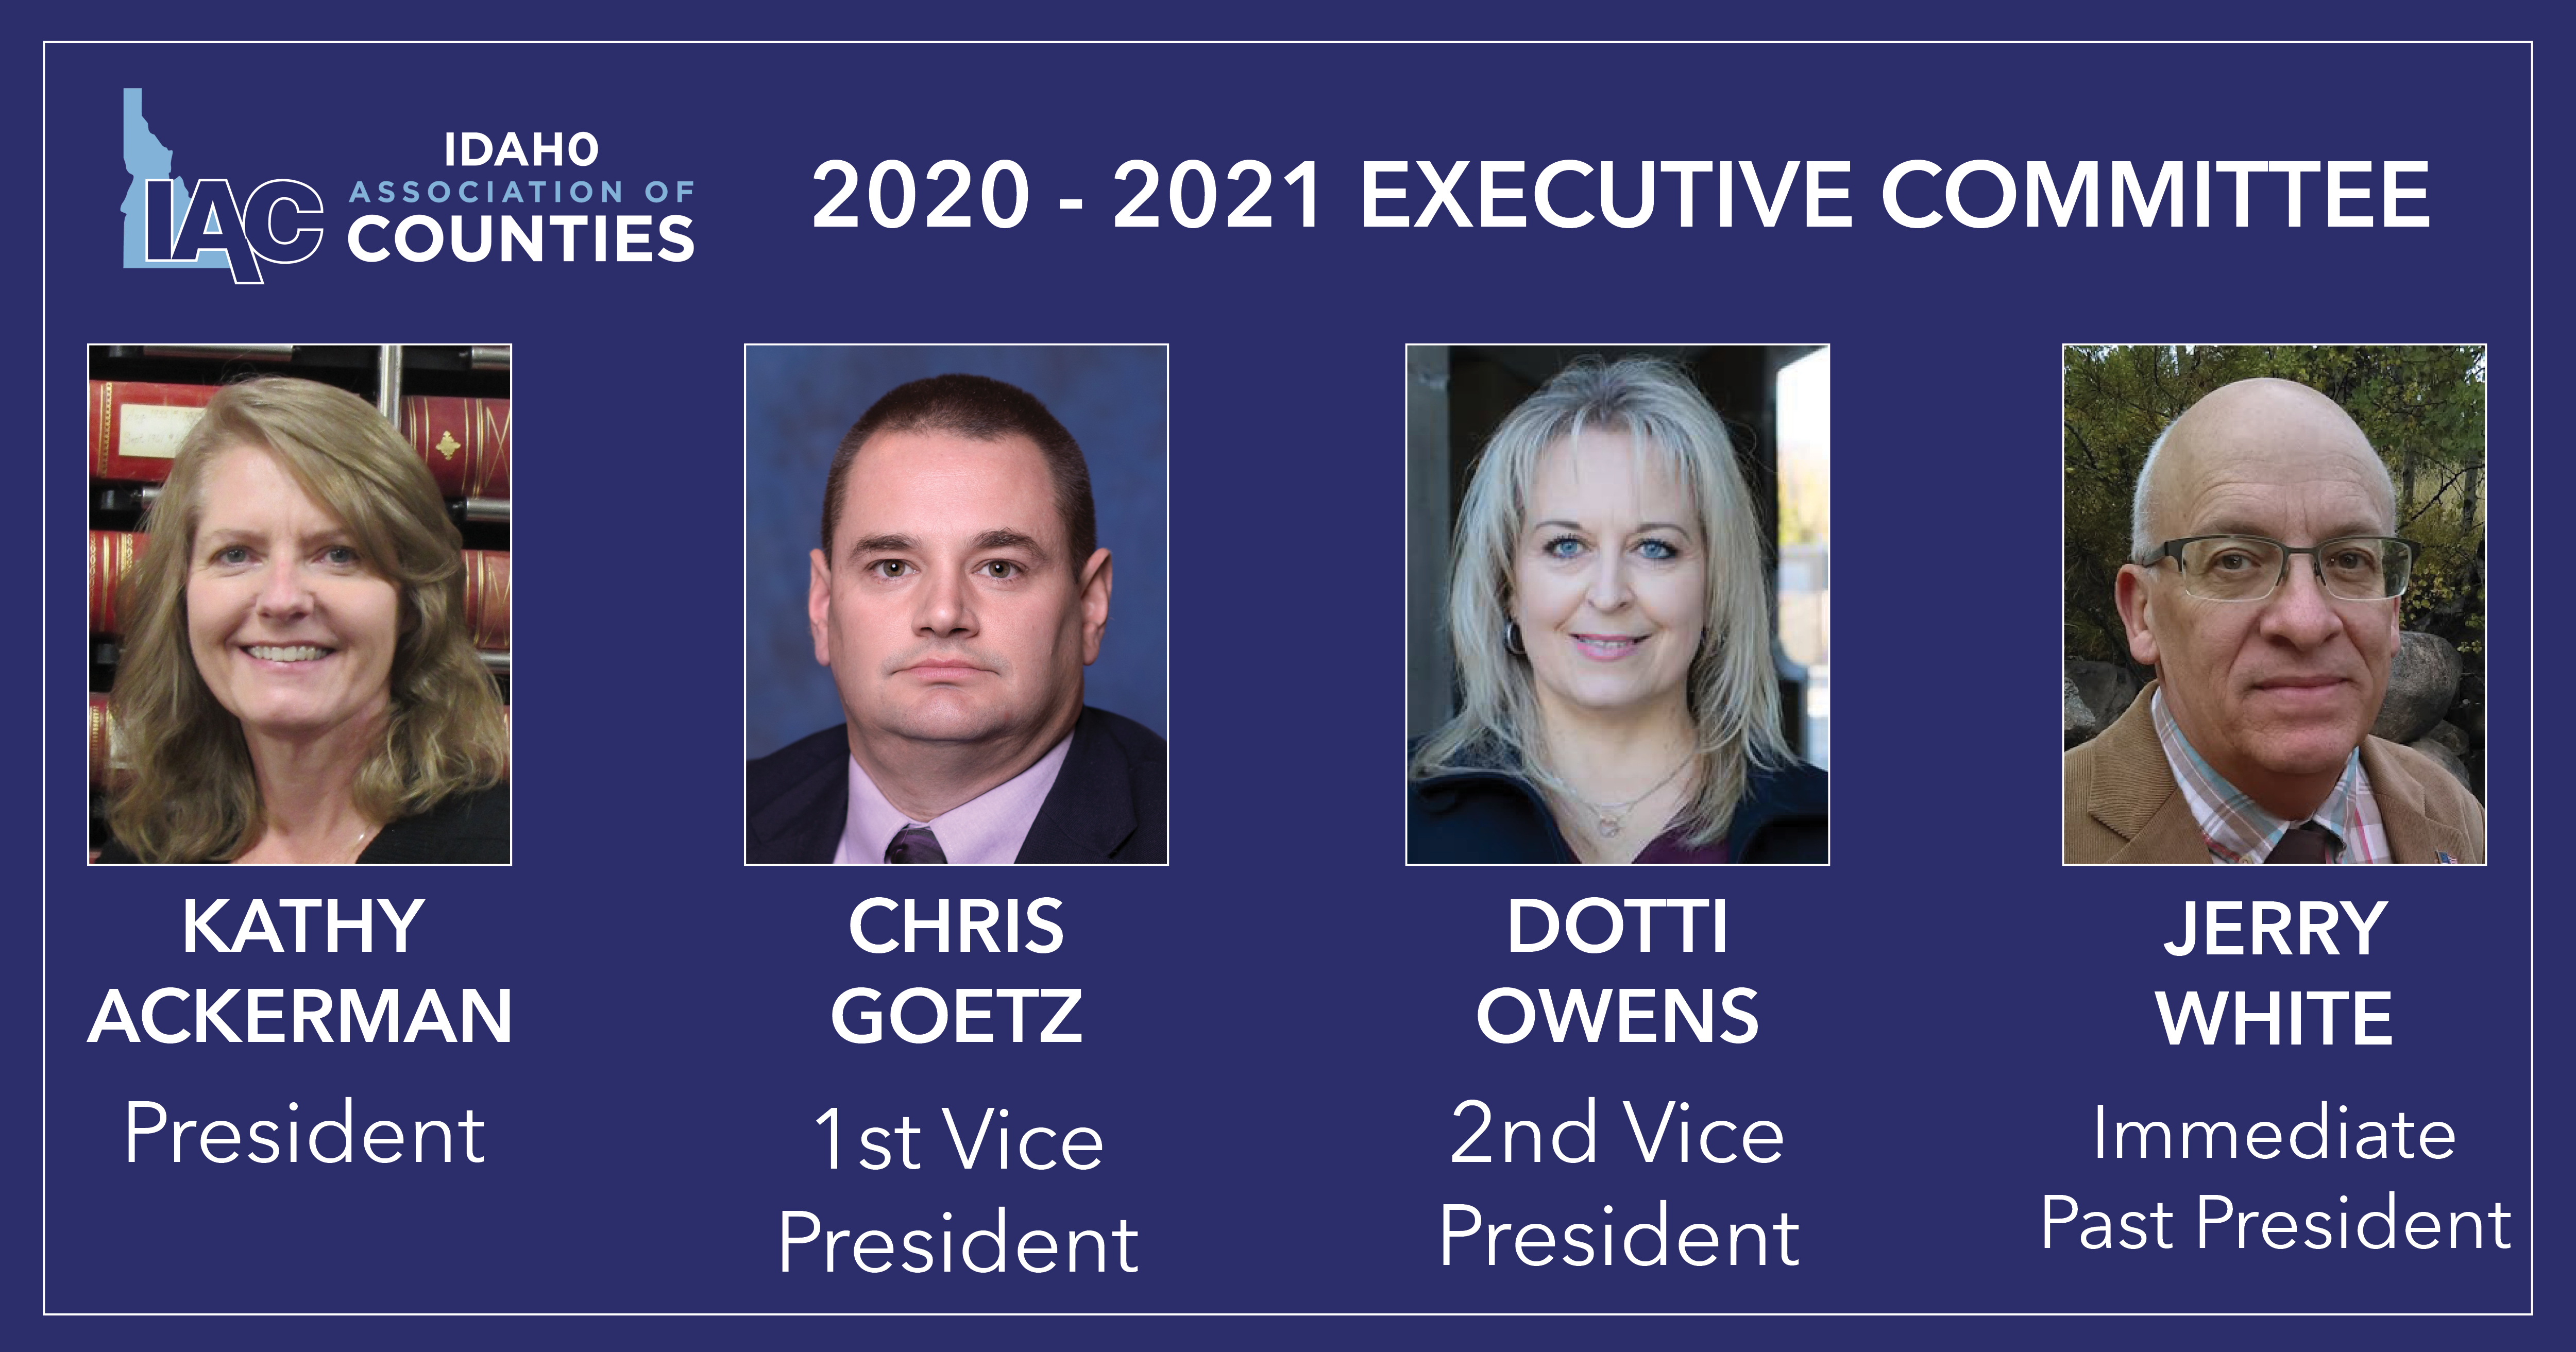 Idaho Association of Counties elects new leadership for 2020-2021